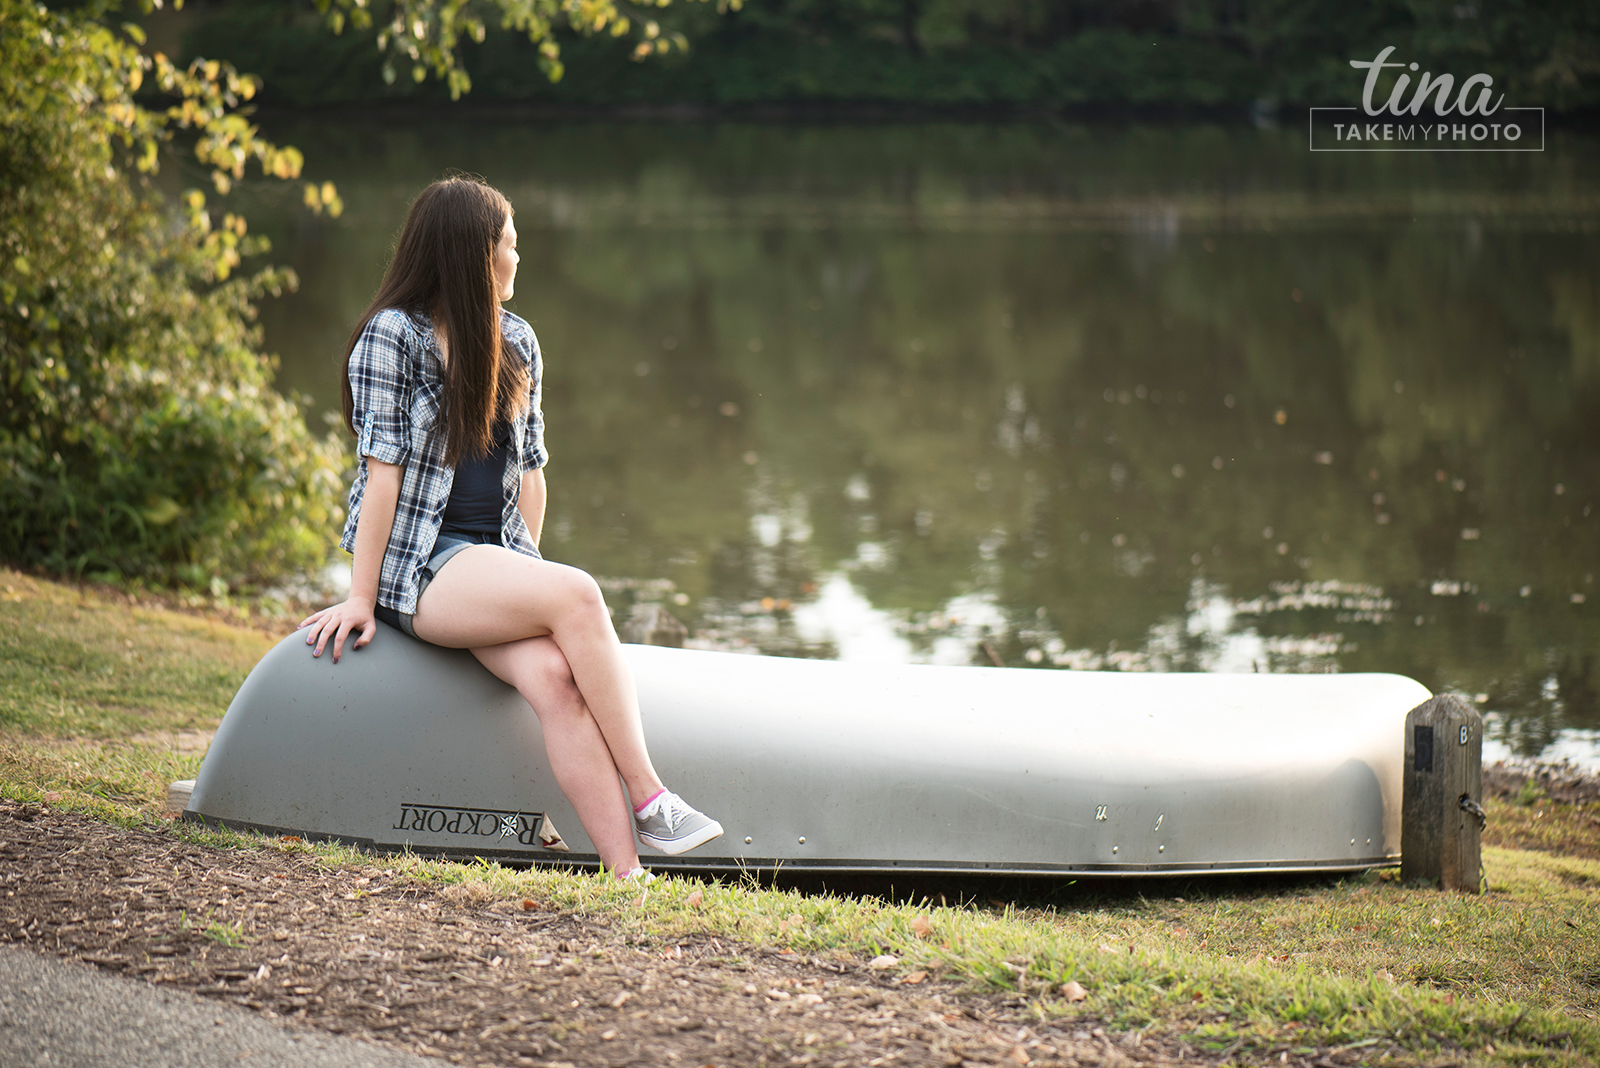 Sunny-Fun-High-School-Senior-Portrait-Pose-Brandermill-Virginia-Photographer-Woodlake-Canoe-2016-Seniors-RVA-13